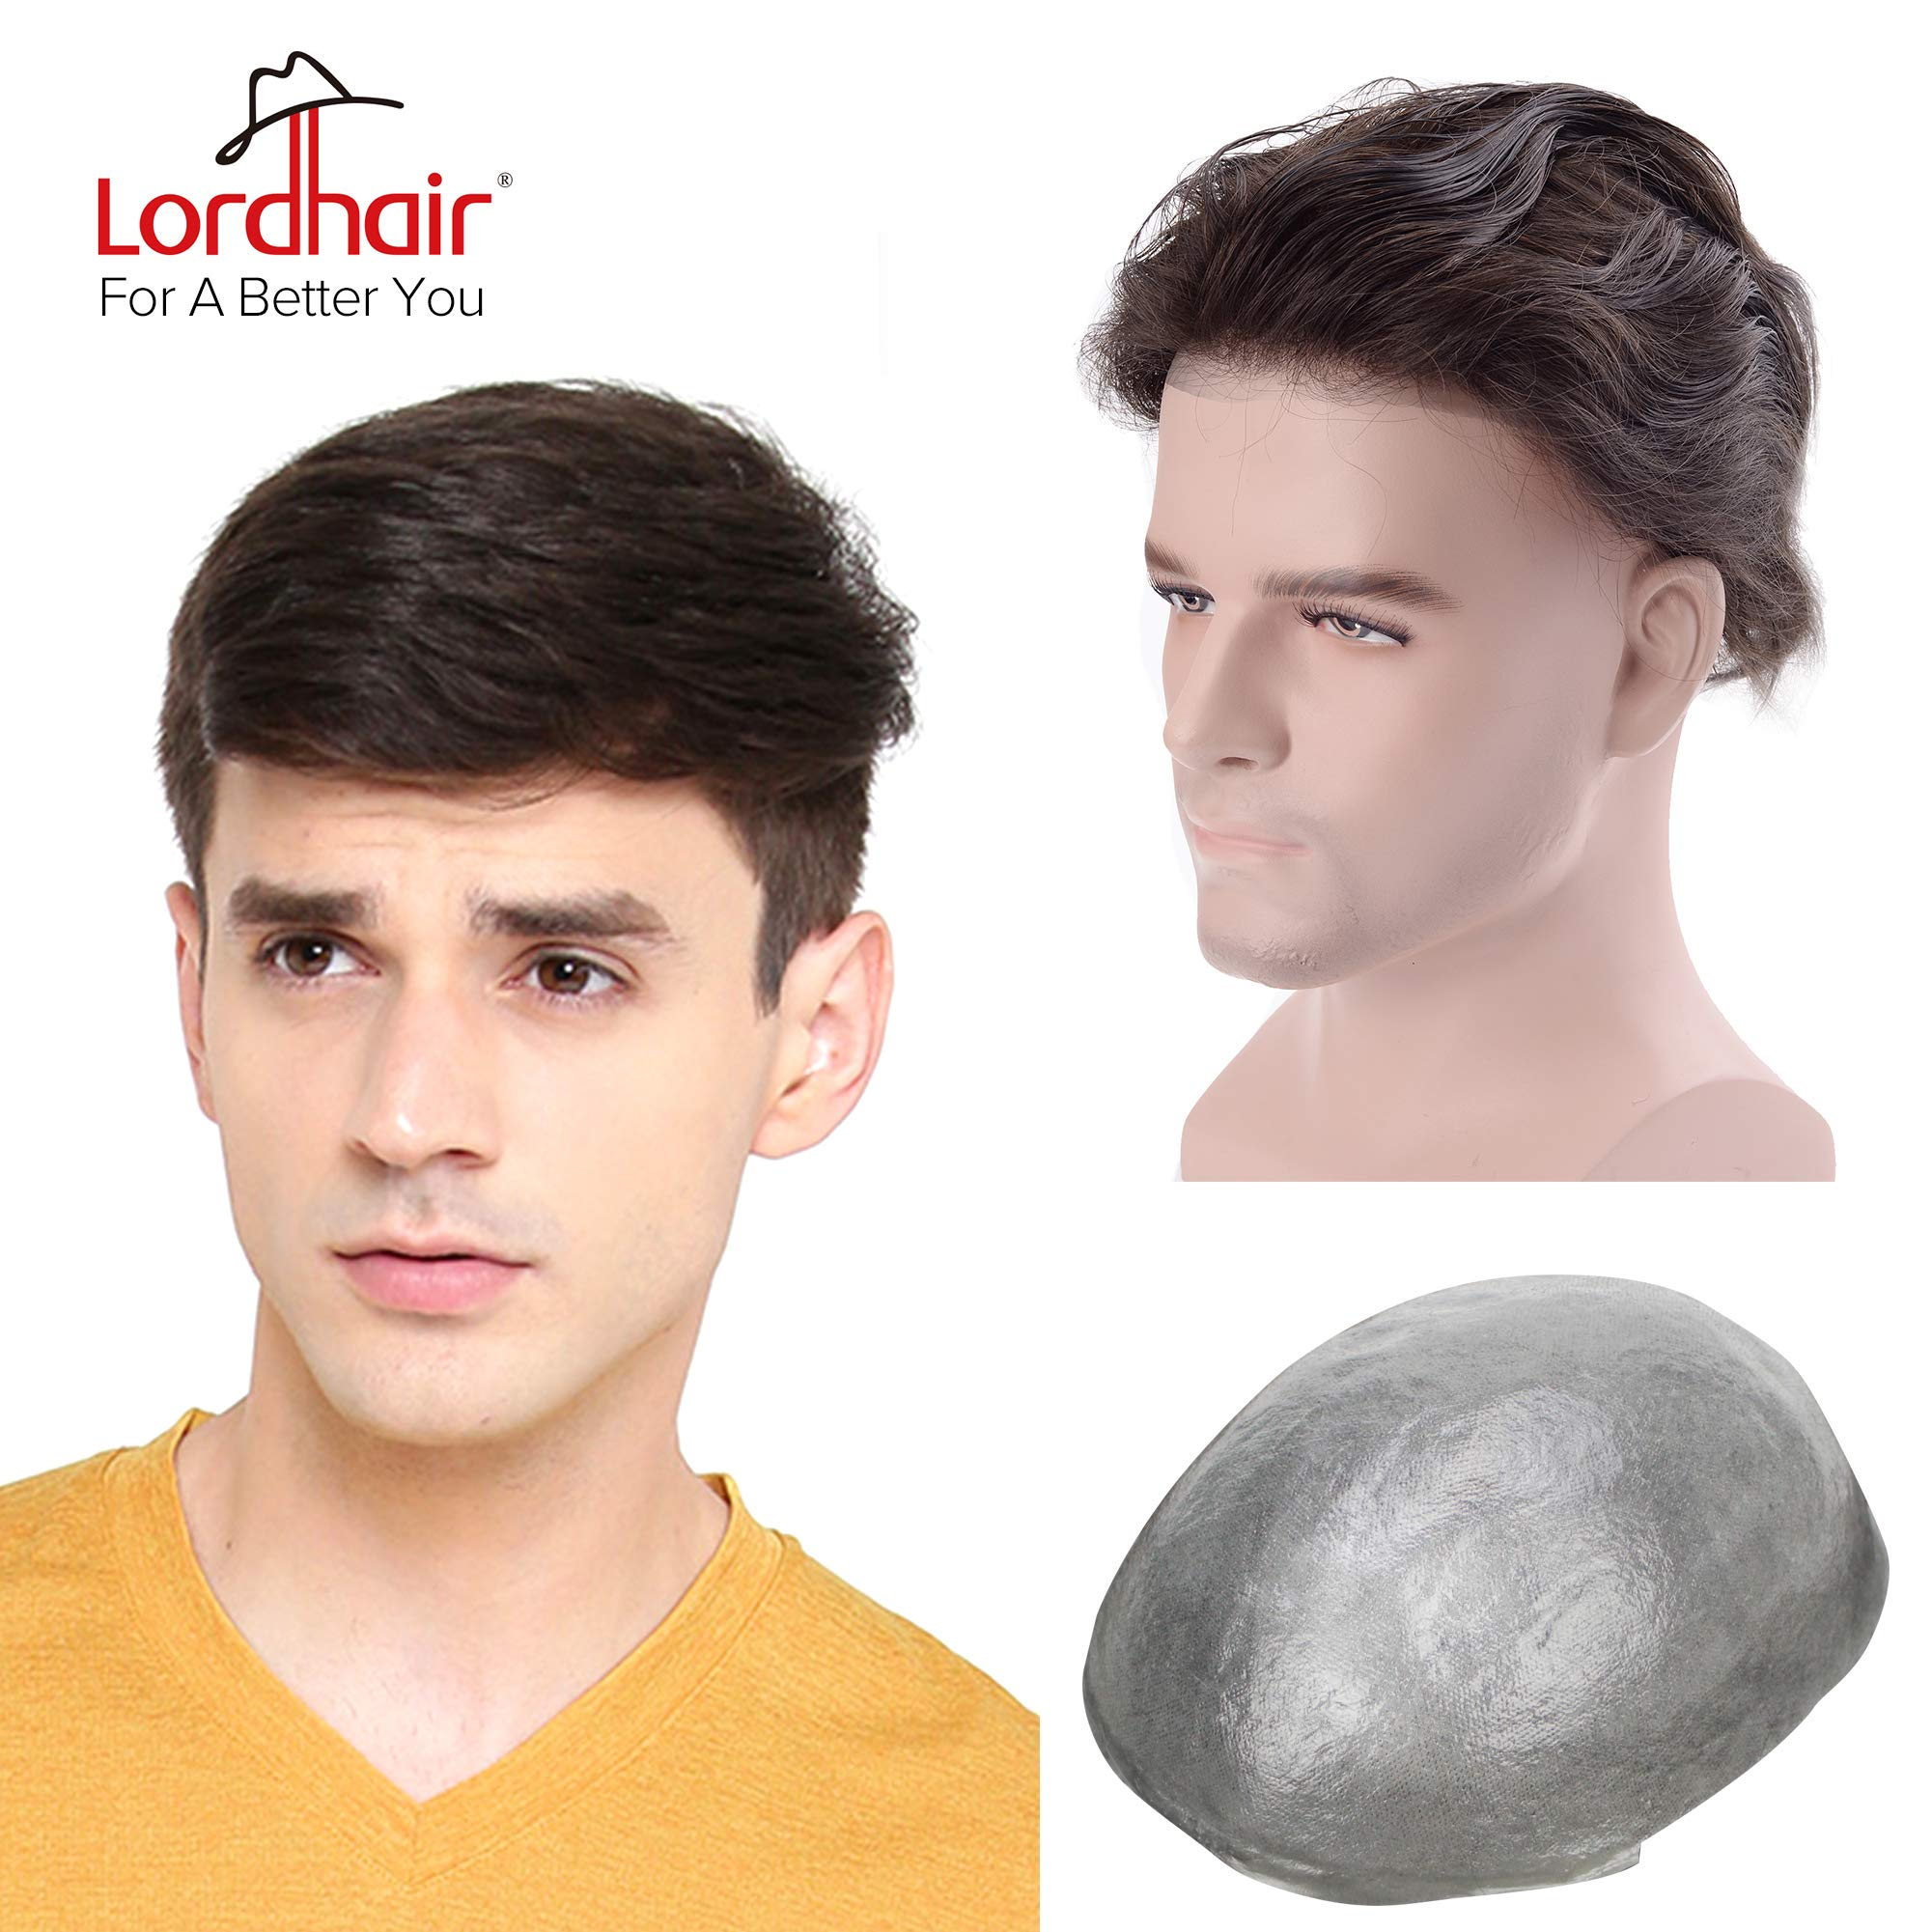 Lordhair Toupee Skin Men's Toupee Human Hair Pieces for Men Natural Hair Replacement Darkest Brown Color 1B (6 Colors Available) by Lordhair (Image #1)